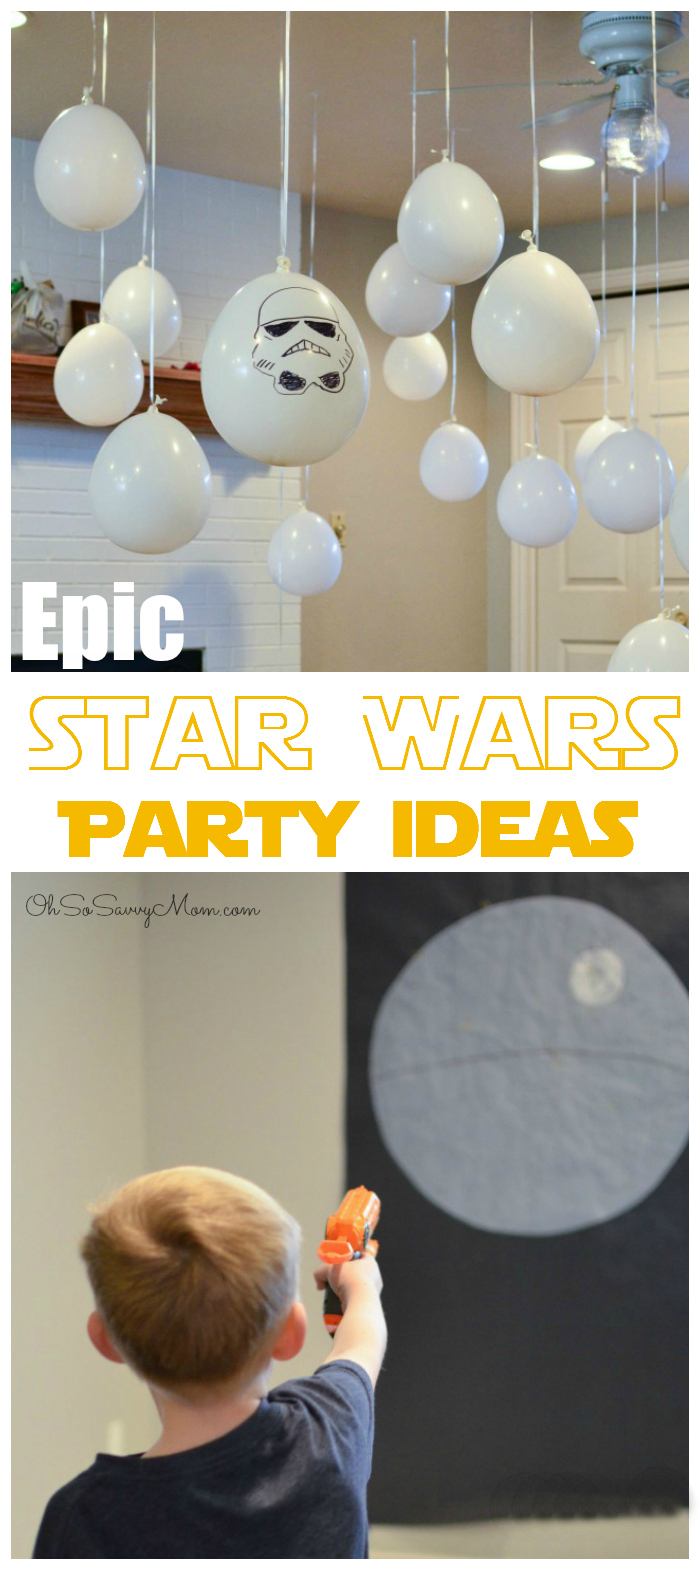 Epic Star Wars Party Ideas to throw the most awesome Star Wars Birthday Party on the cheap!